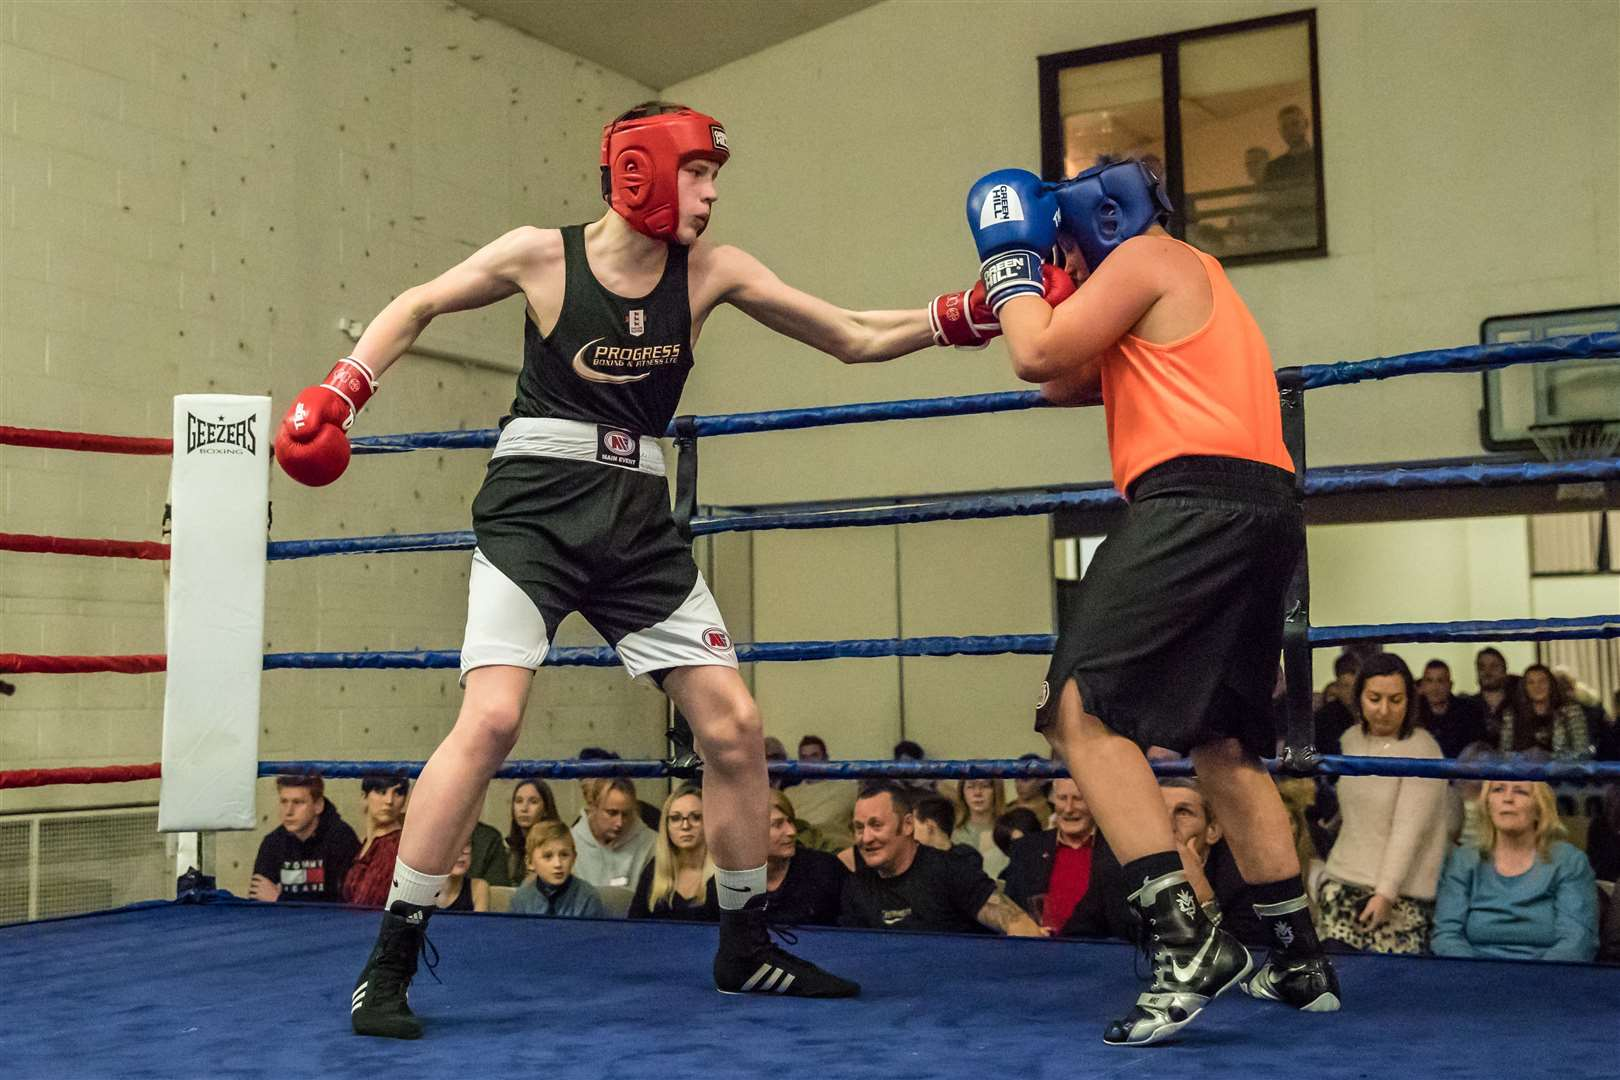 Progress Boxing - Diss Hope Church Show. Bout 12 - (Red) Toby Herbert (Progress) v (Blue) Mason Minall (Spalding).Winner - Unanimous Decision - Toby Herbert. (5790560)